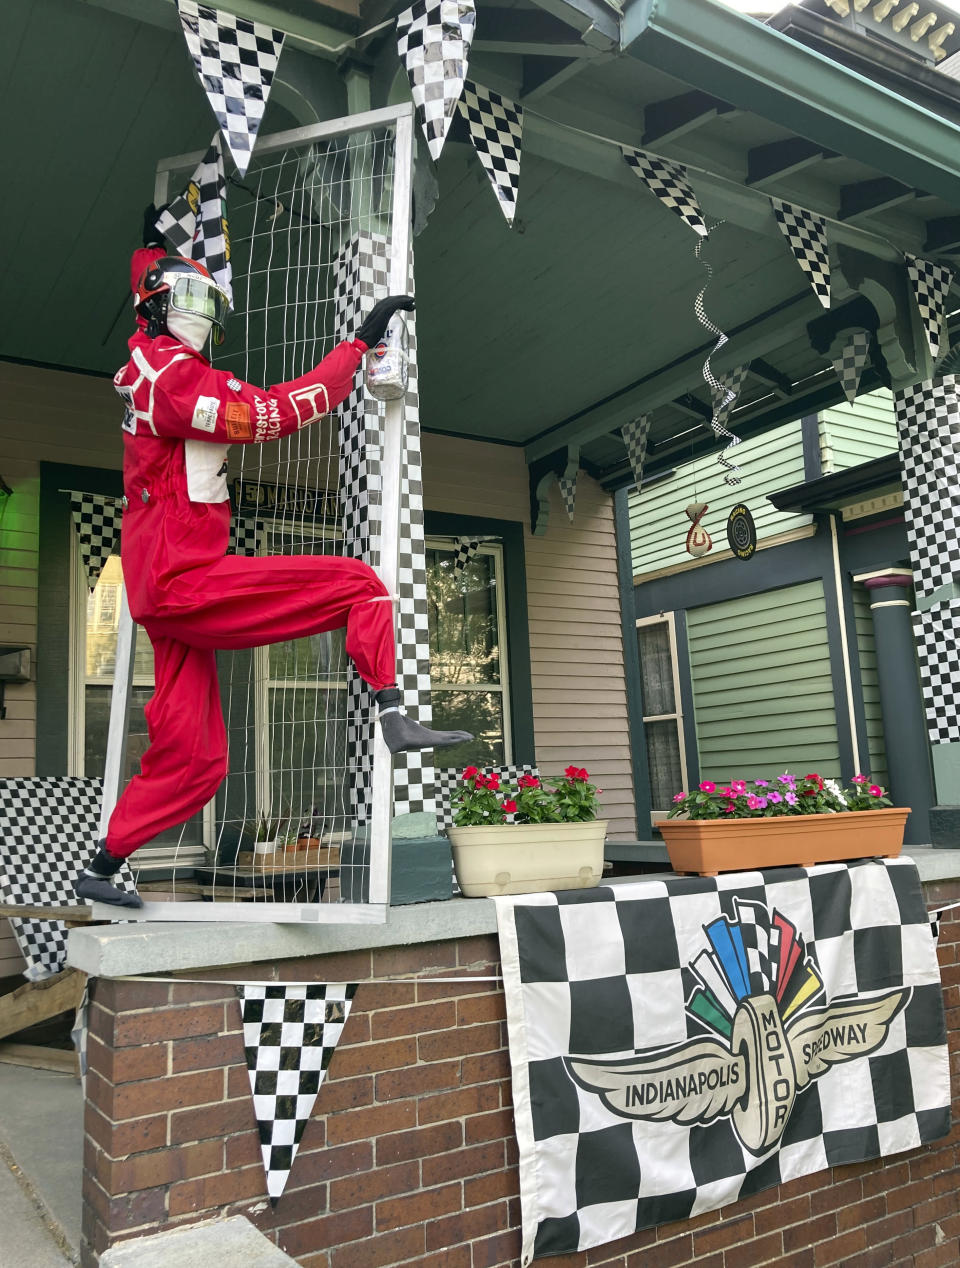 The home of Jameson and Kimmy Terzini, decorated as part of the Spectacle of Homes contest to be featured ahead of the Indianapolis 500 auto race, is shown Thursday, May 27, 2021, in Indianapolis. The husband and wife included a replica of favorite driver Helio Castroneves climbing their porch in hopes of being selected to be featured in the parade ahead of Sunday's race. (AP Photo/Jenna Fryer)